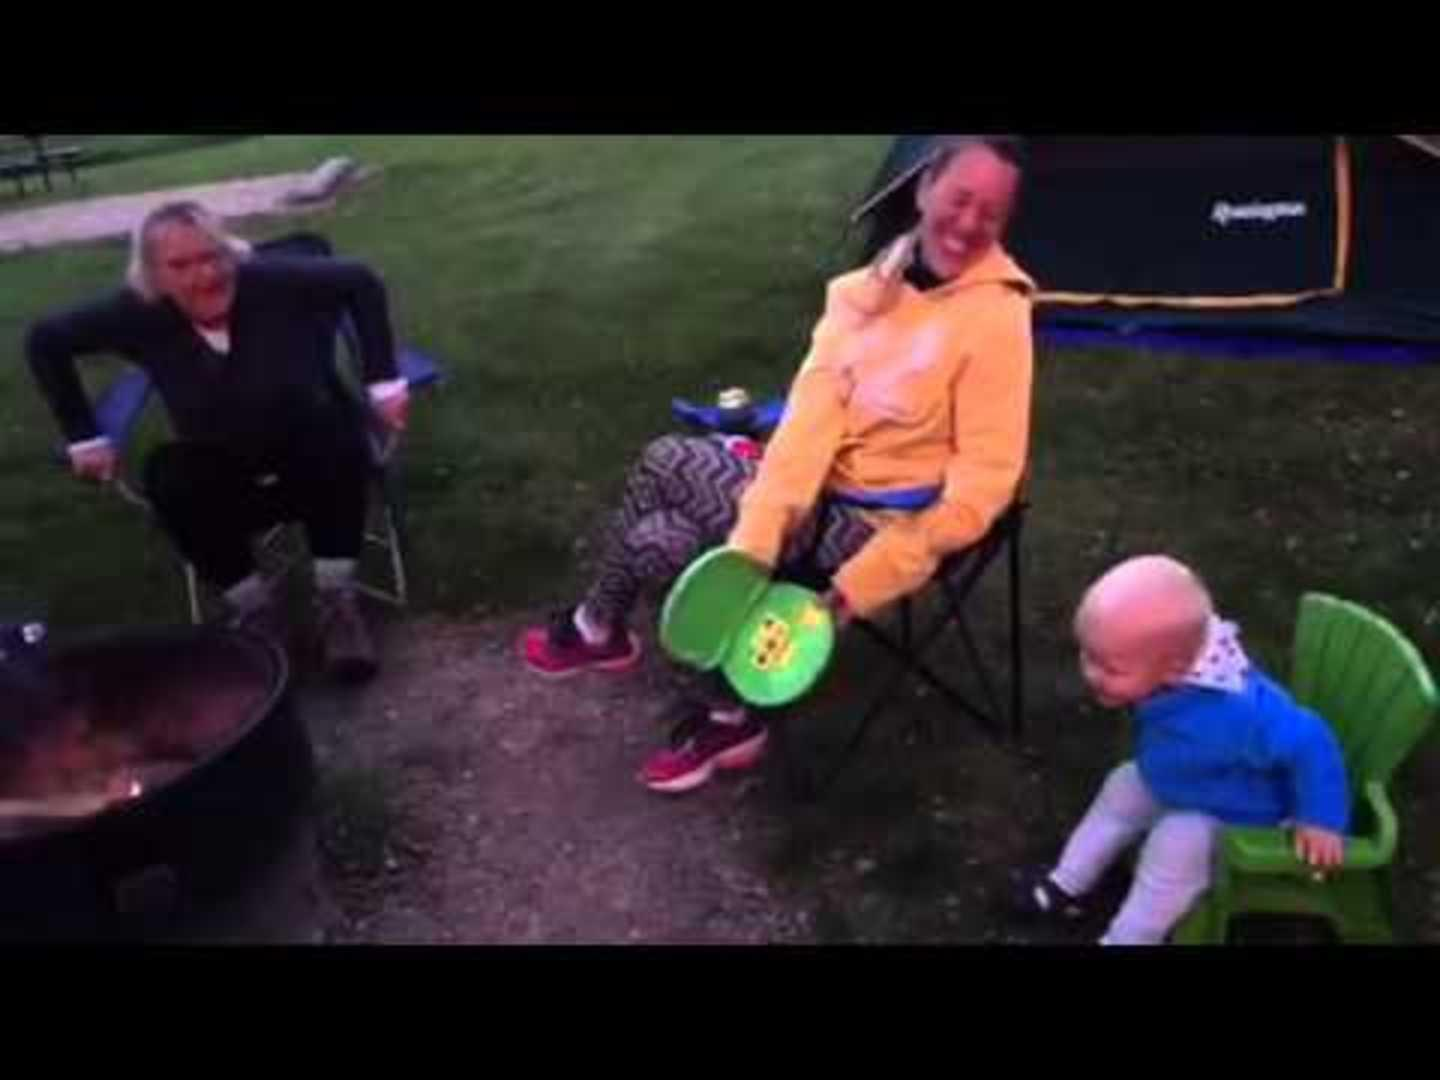 Grandma Falls through Chair